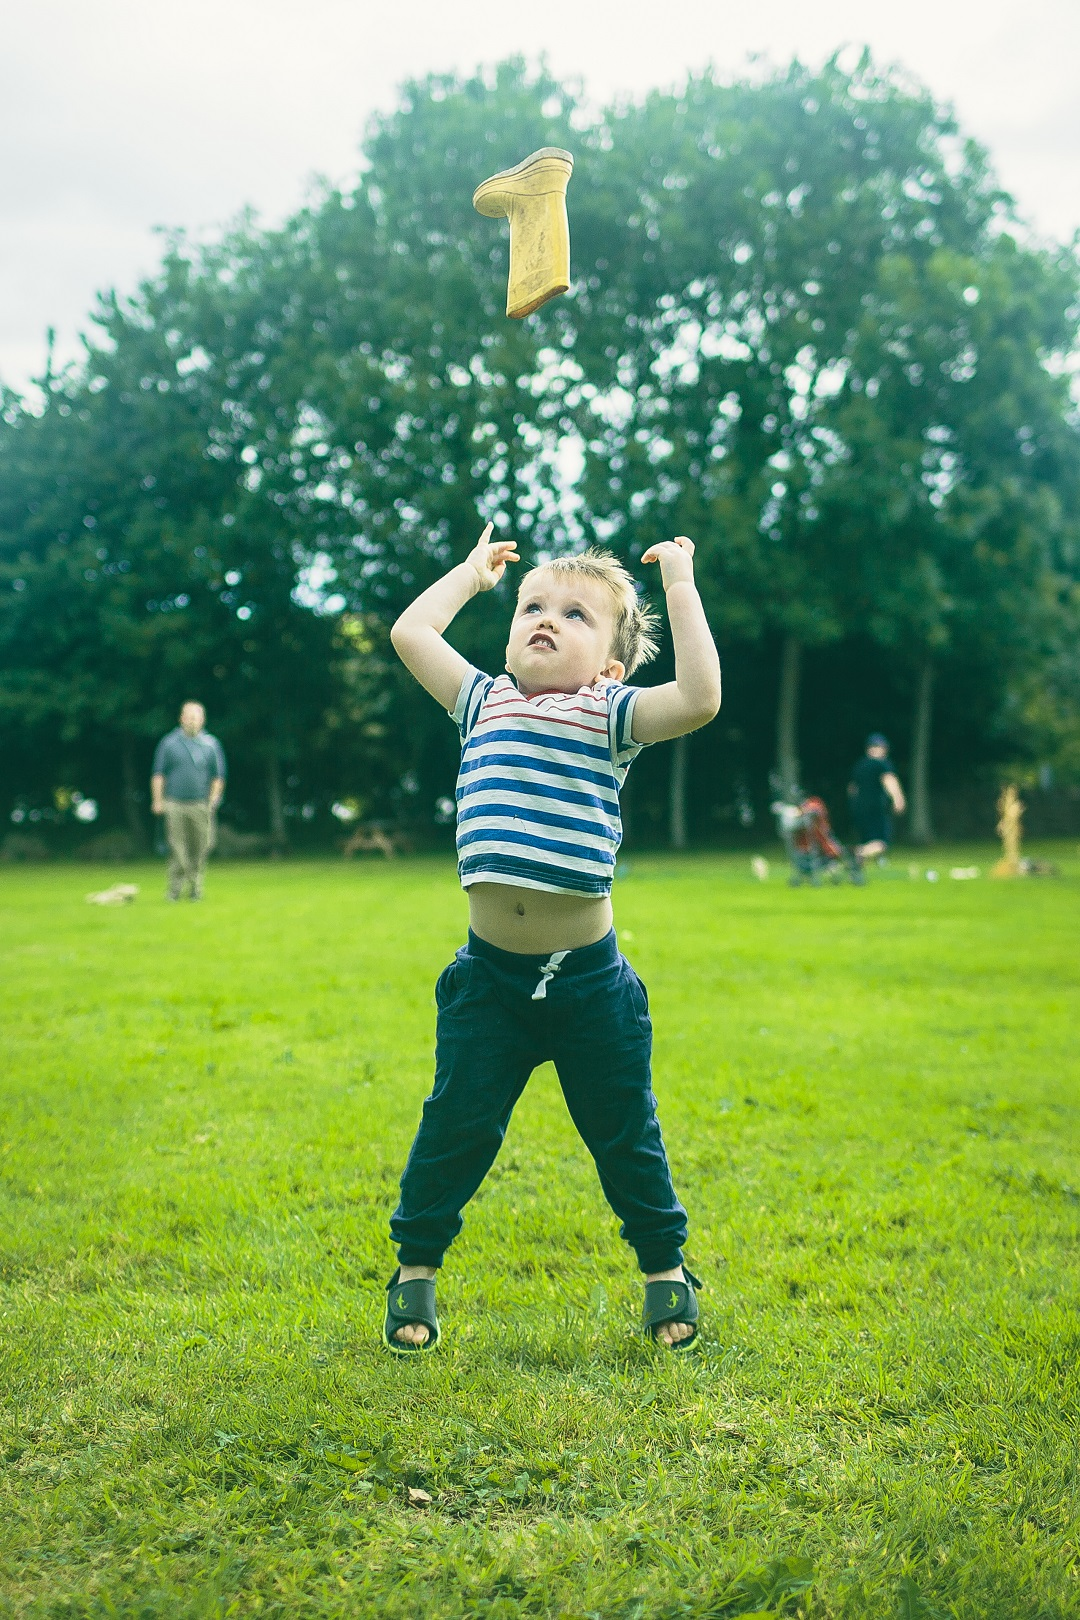 067-Highland Games - welly tossing